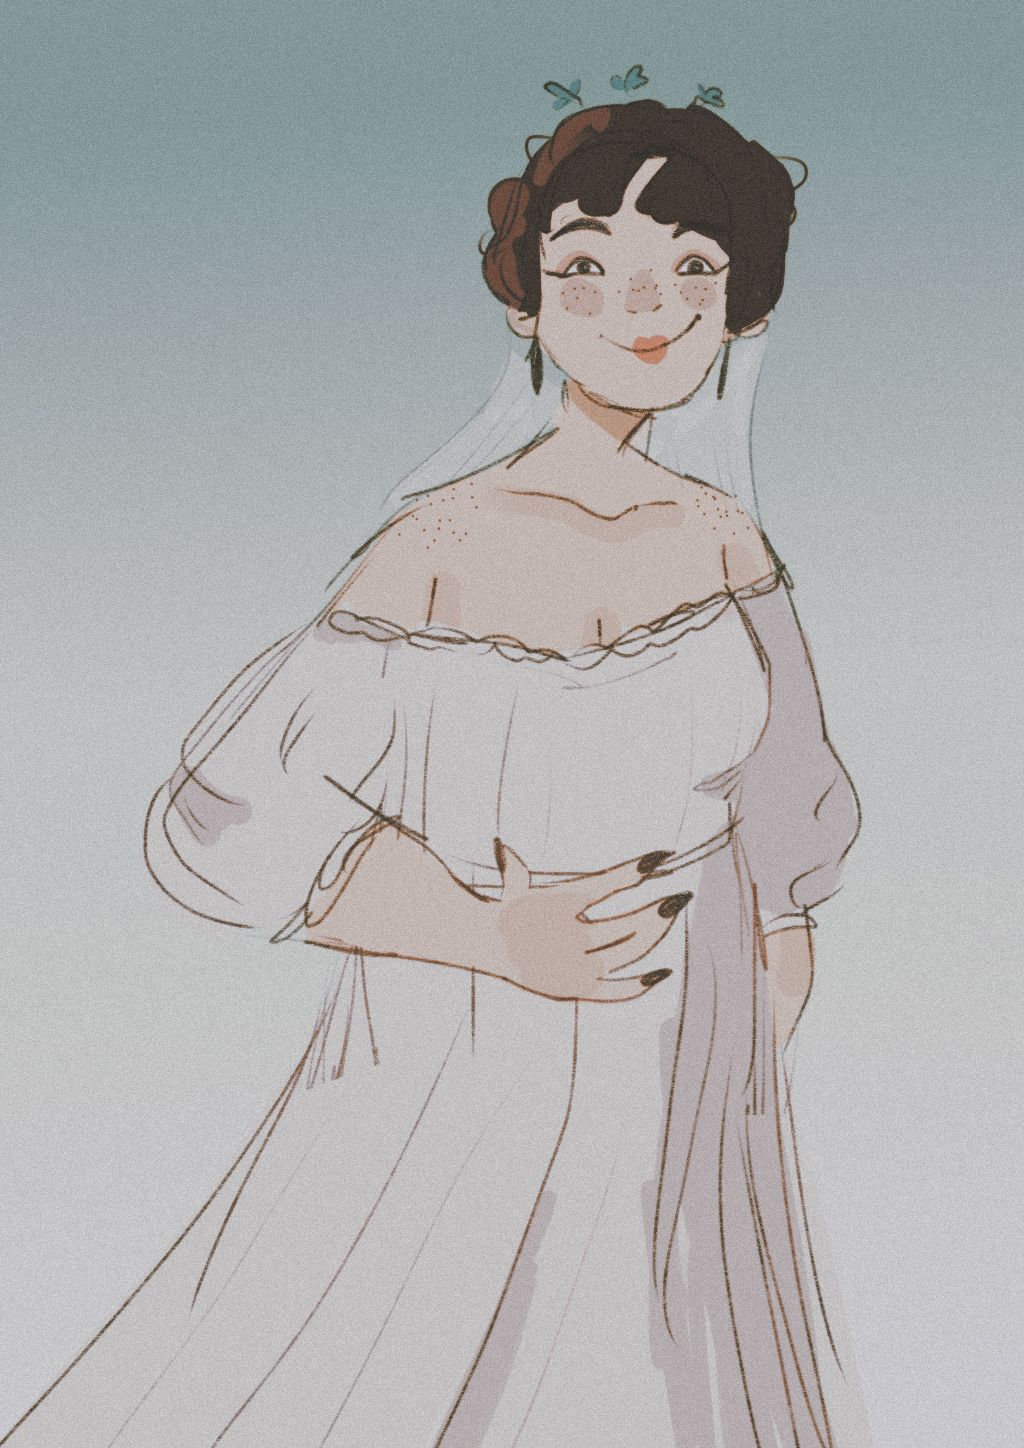 For my fRiEnd amshkznwnd. Basically im trash and i did a really bad job with the refrences i was gIVEn.  Msjsksjdjs. Does rhis coUnt as the reQuesT shE gave me 10 years ago???? Idk...         Tags: #interesting #art #digitalart #friend #weddings